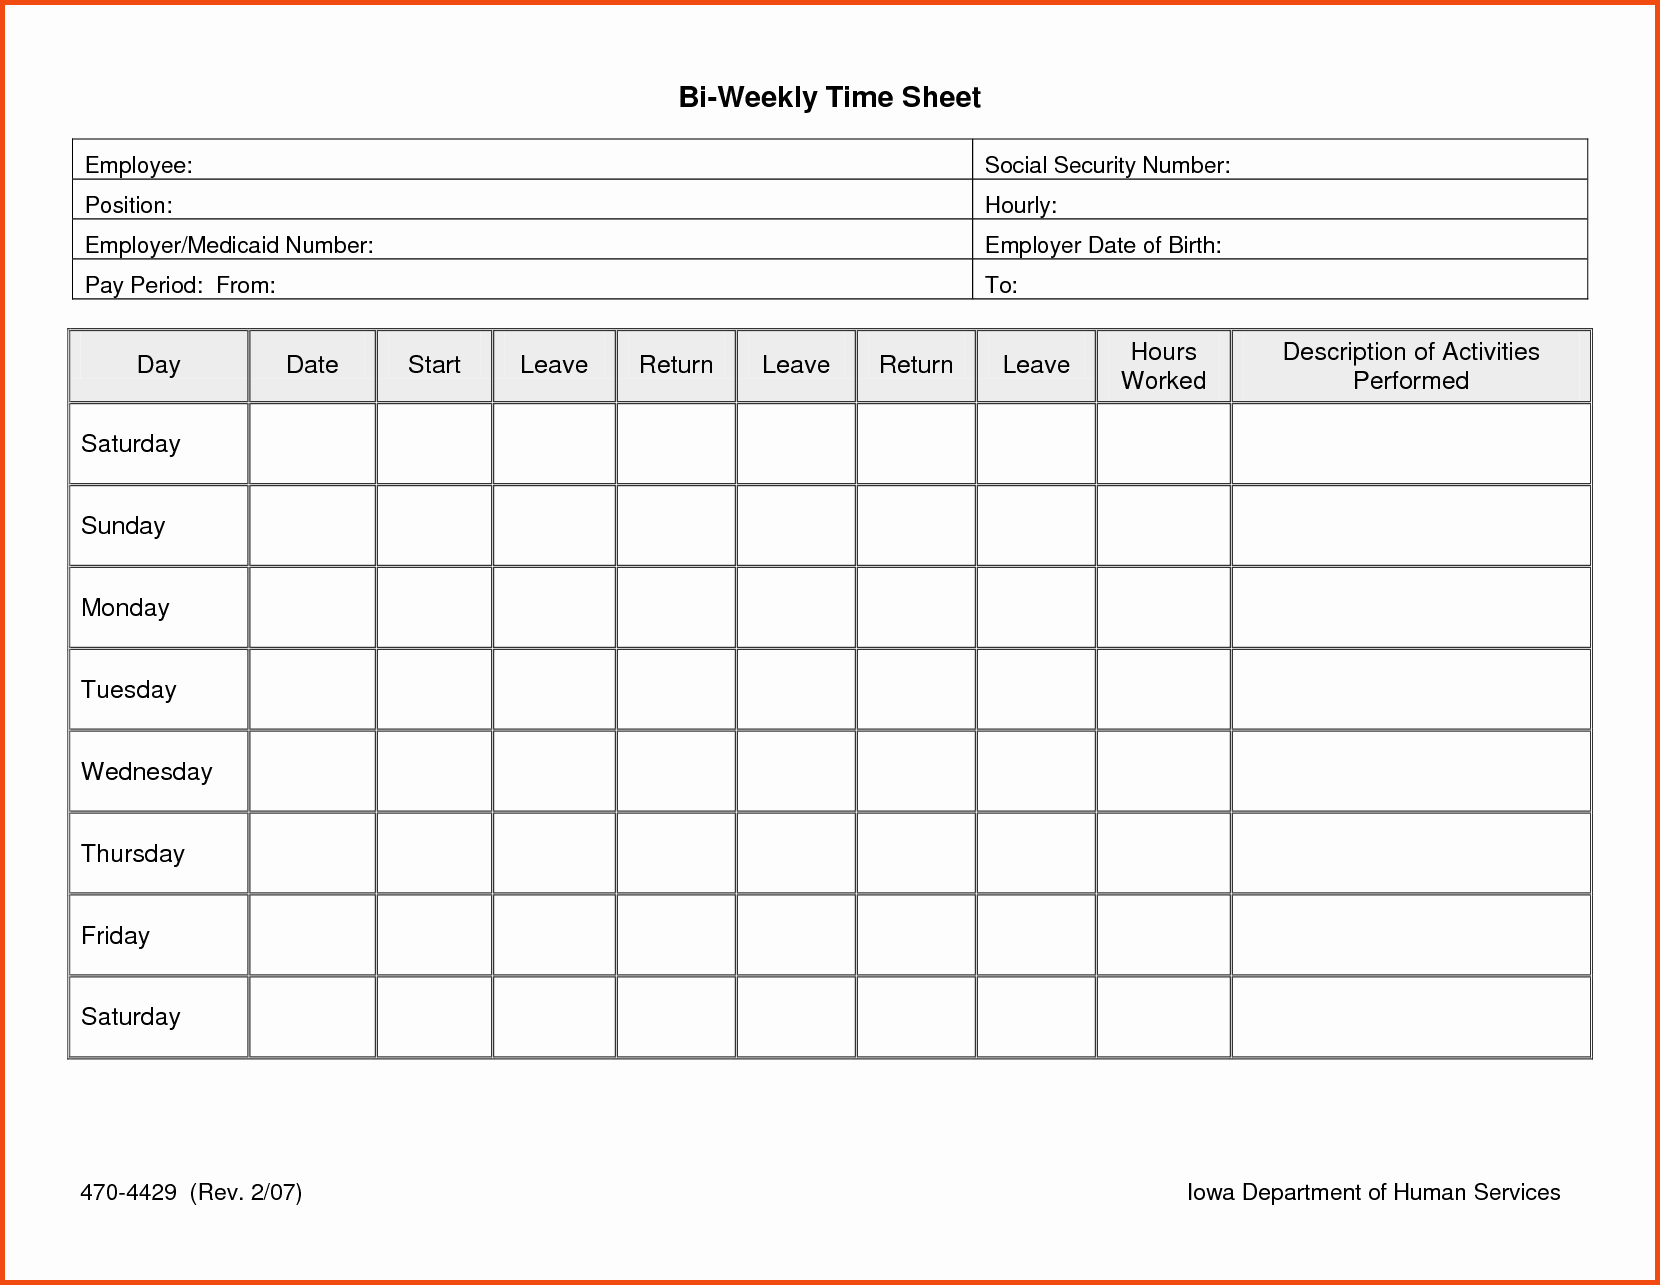 Home Health Care Timesheets Of Daily Timesheet Template Free - Free Printable Blank Time Sheets